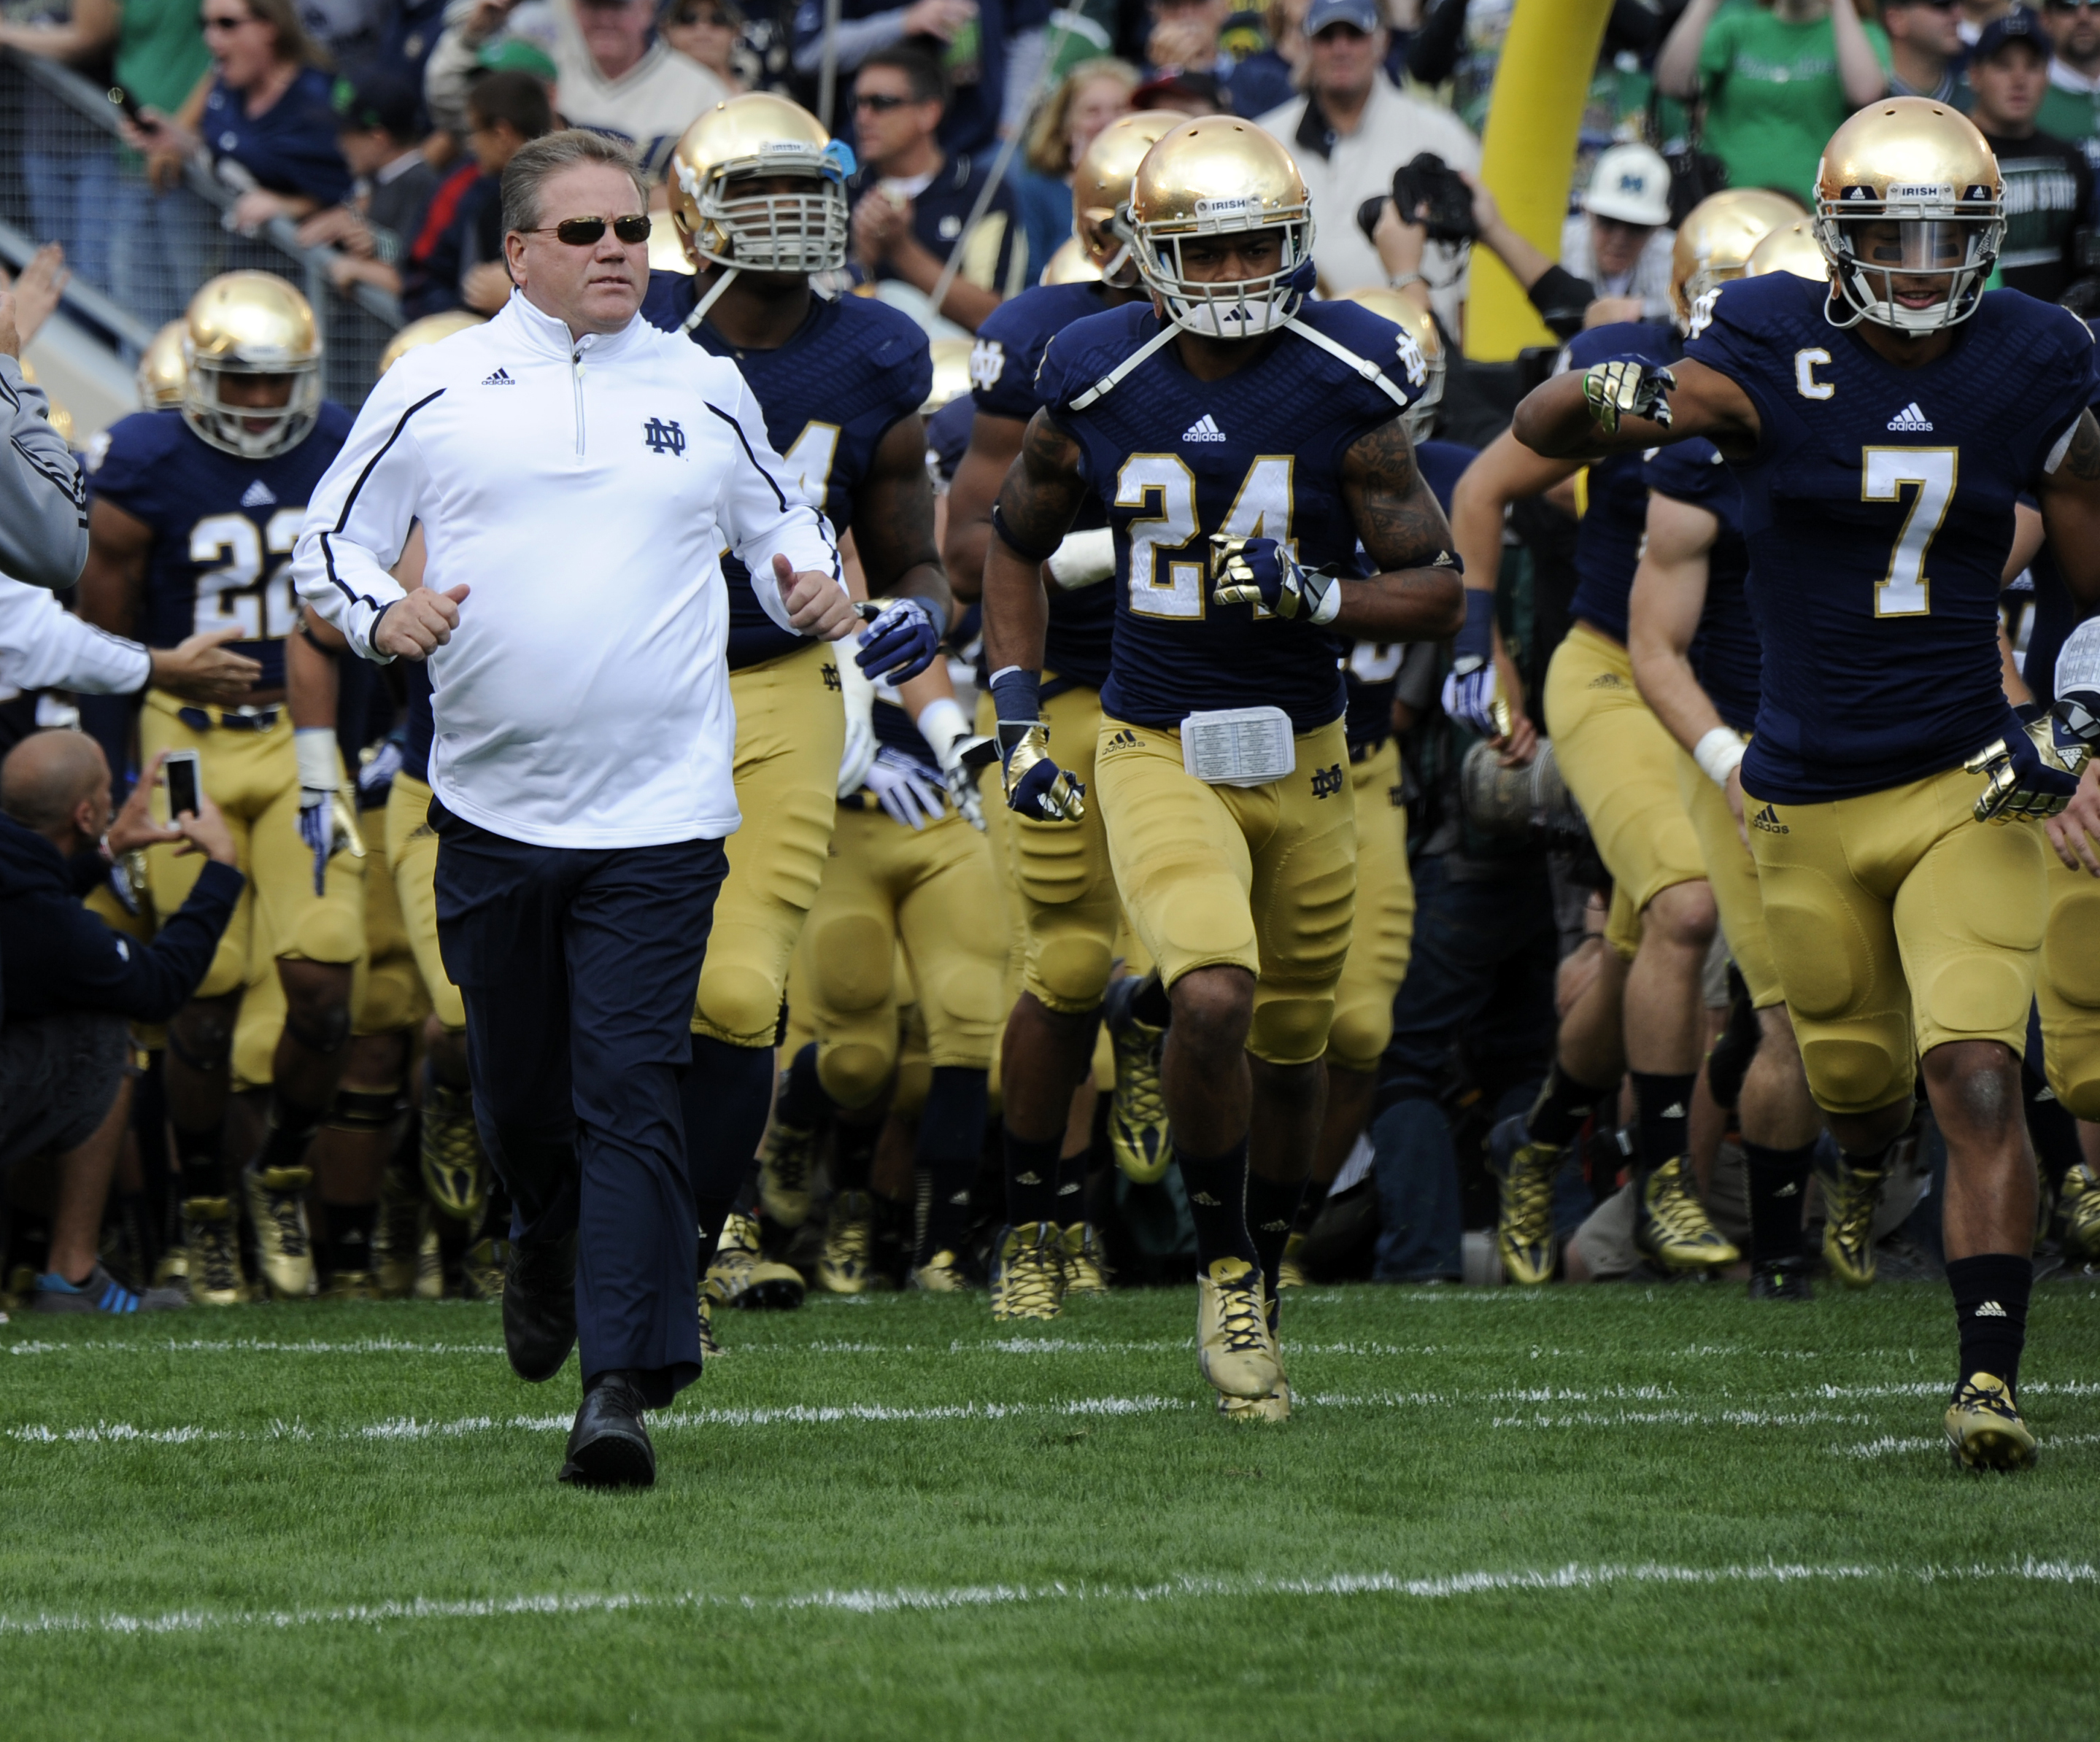 FILE - In this Sept. 21, 2013, file photo, Notre Dame coach Brian Kelly runs onto the field with his team prior to a in a NCAA college football game with Michigan State in South Bend, Ind. The NCAA is ordering Notre Dame to vacate wins from its 2012 and 2